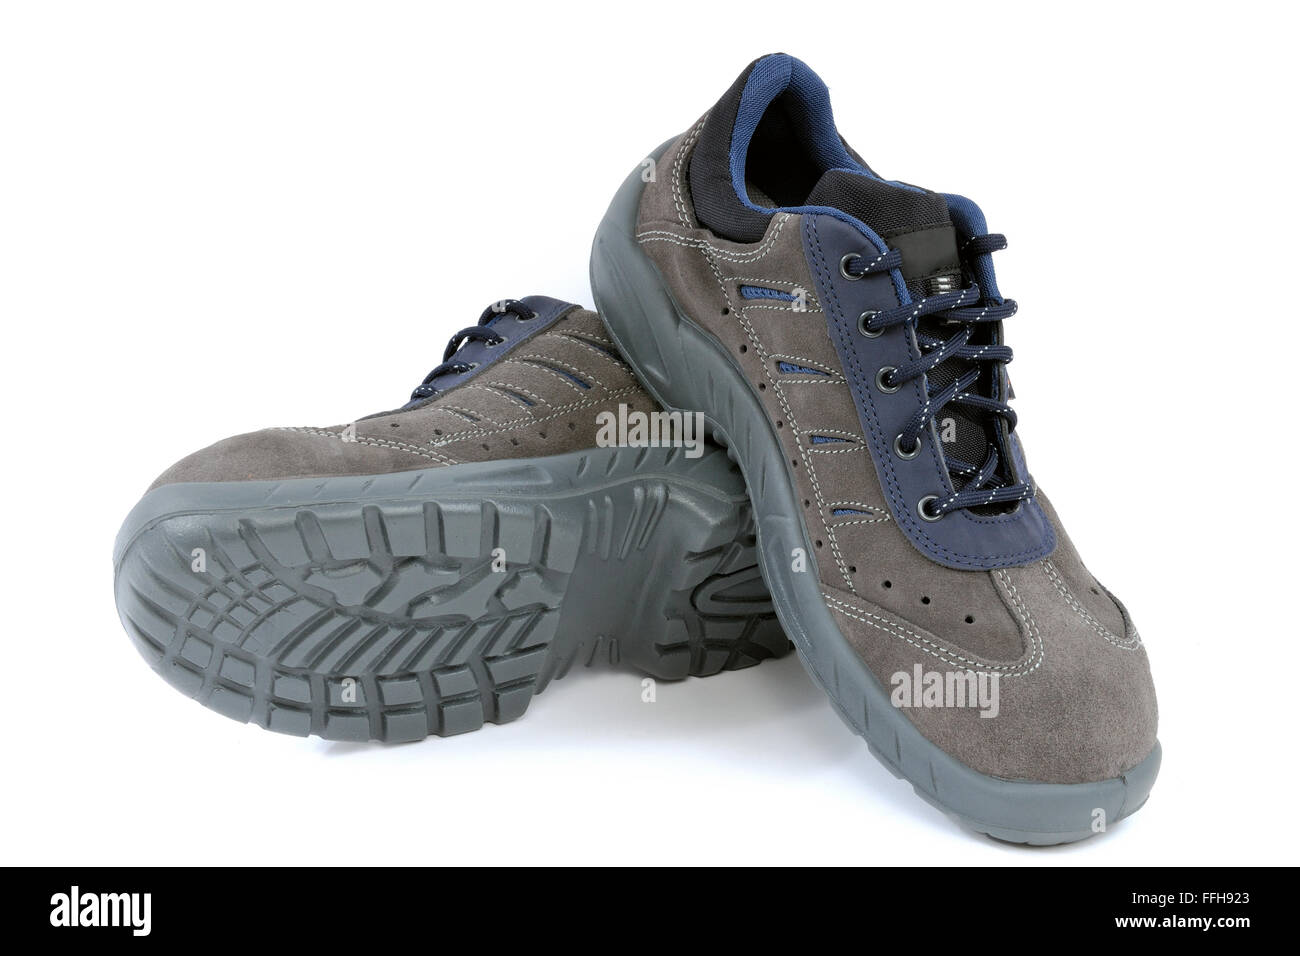 Protective work shoes for heavy work at the construction site - Stock Image